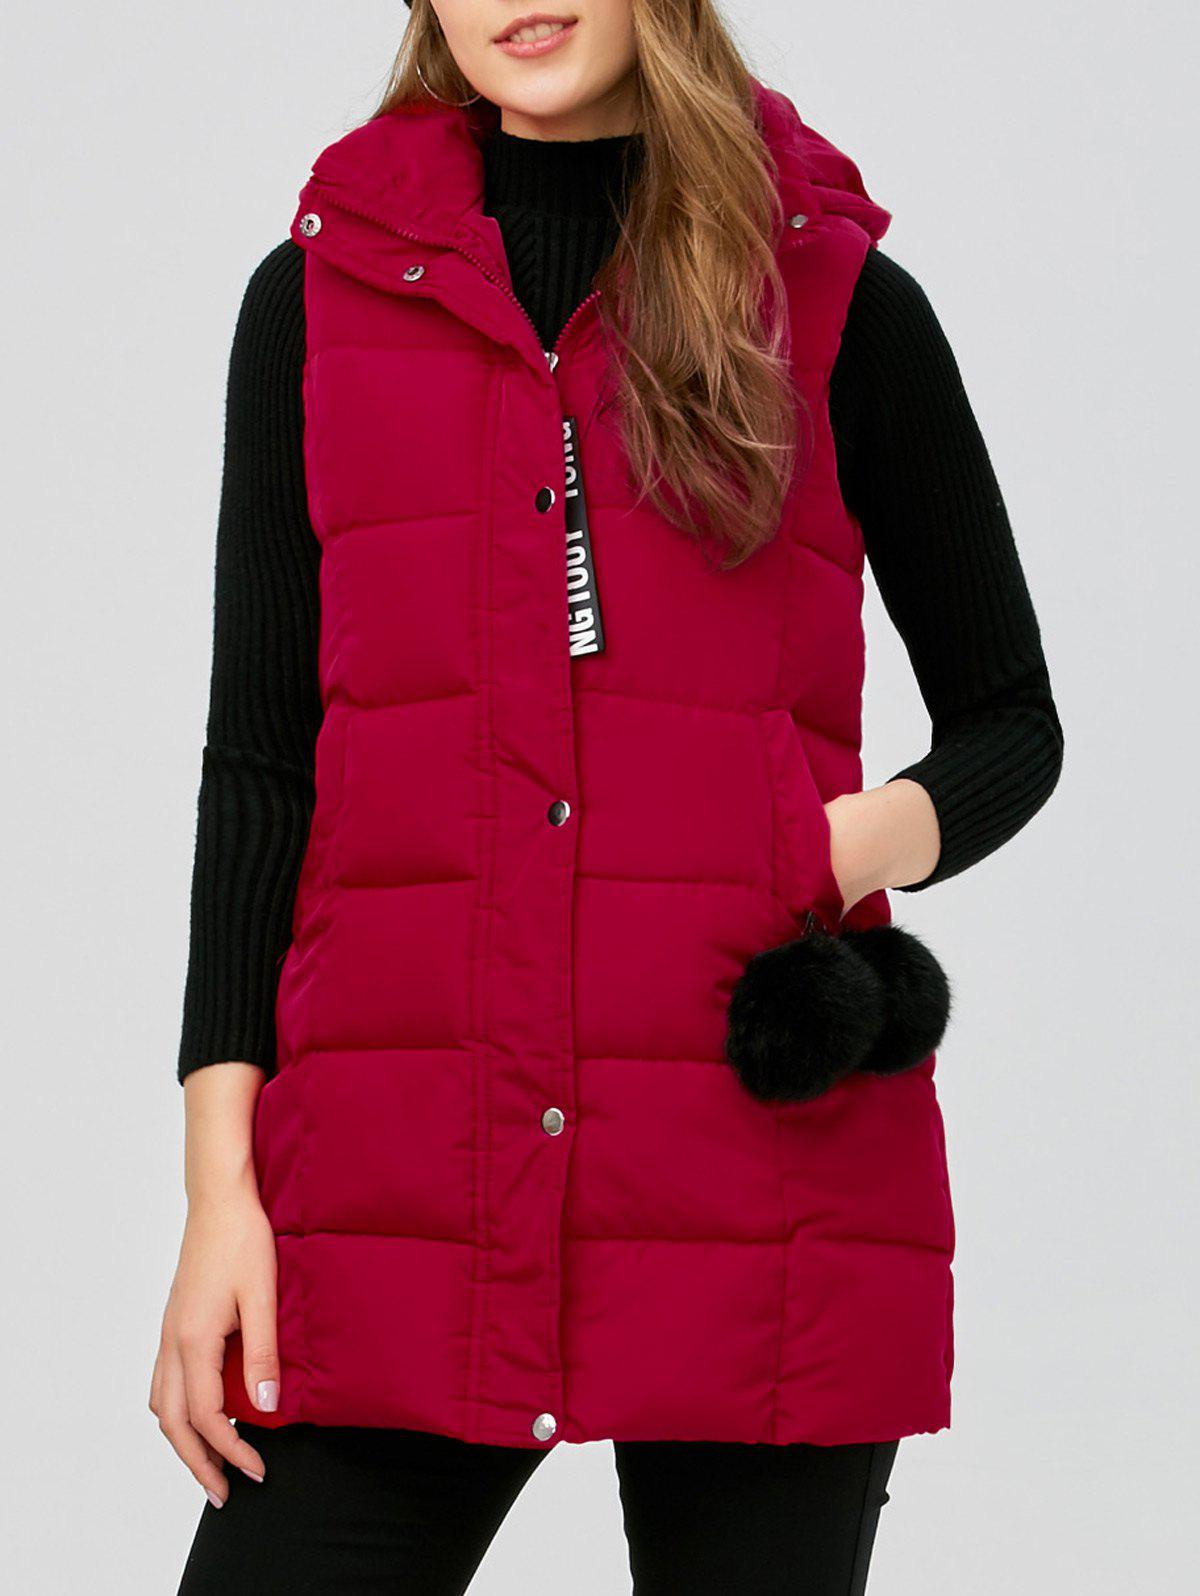 Zip Fly Long Hooded Down Vest - RED XL